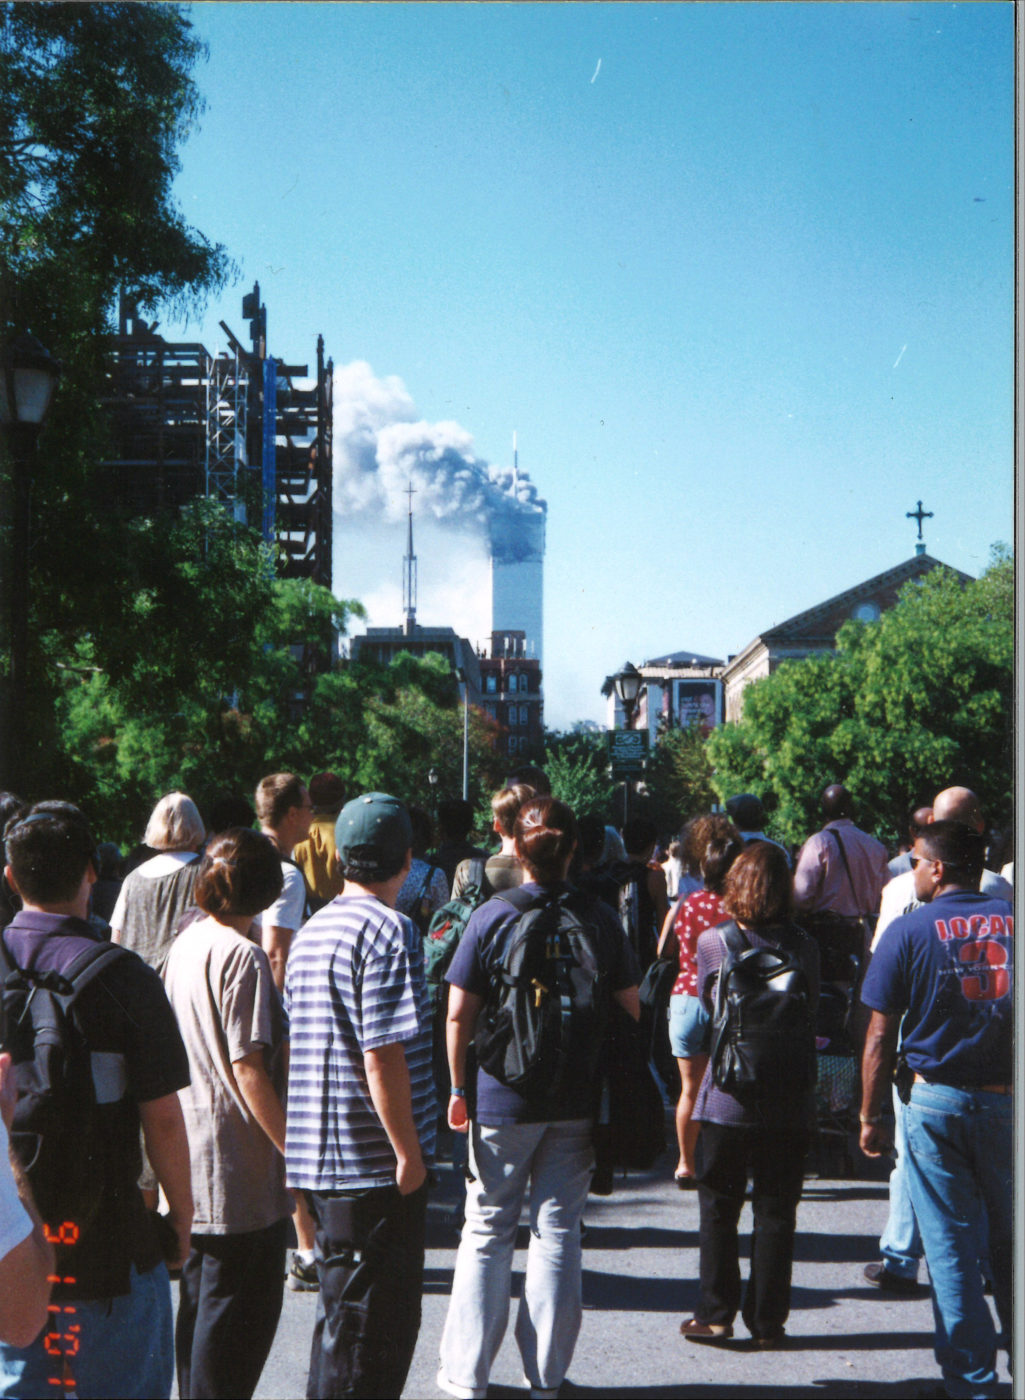 New Yorkers Gather to Watch from Washington Square Park as Tower 1 Burning after Collapse of Tower 2 .jpg